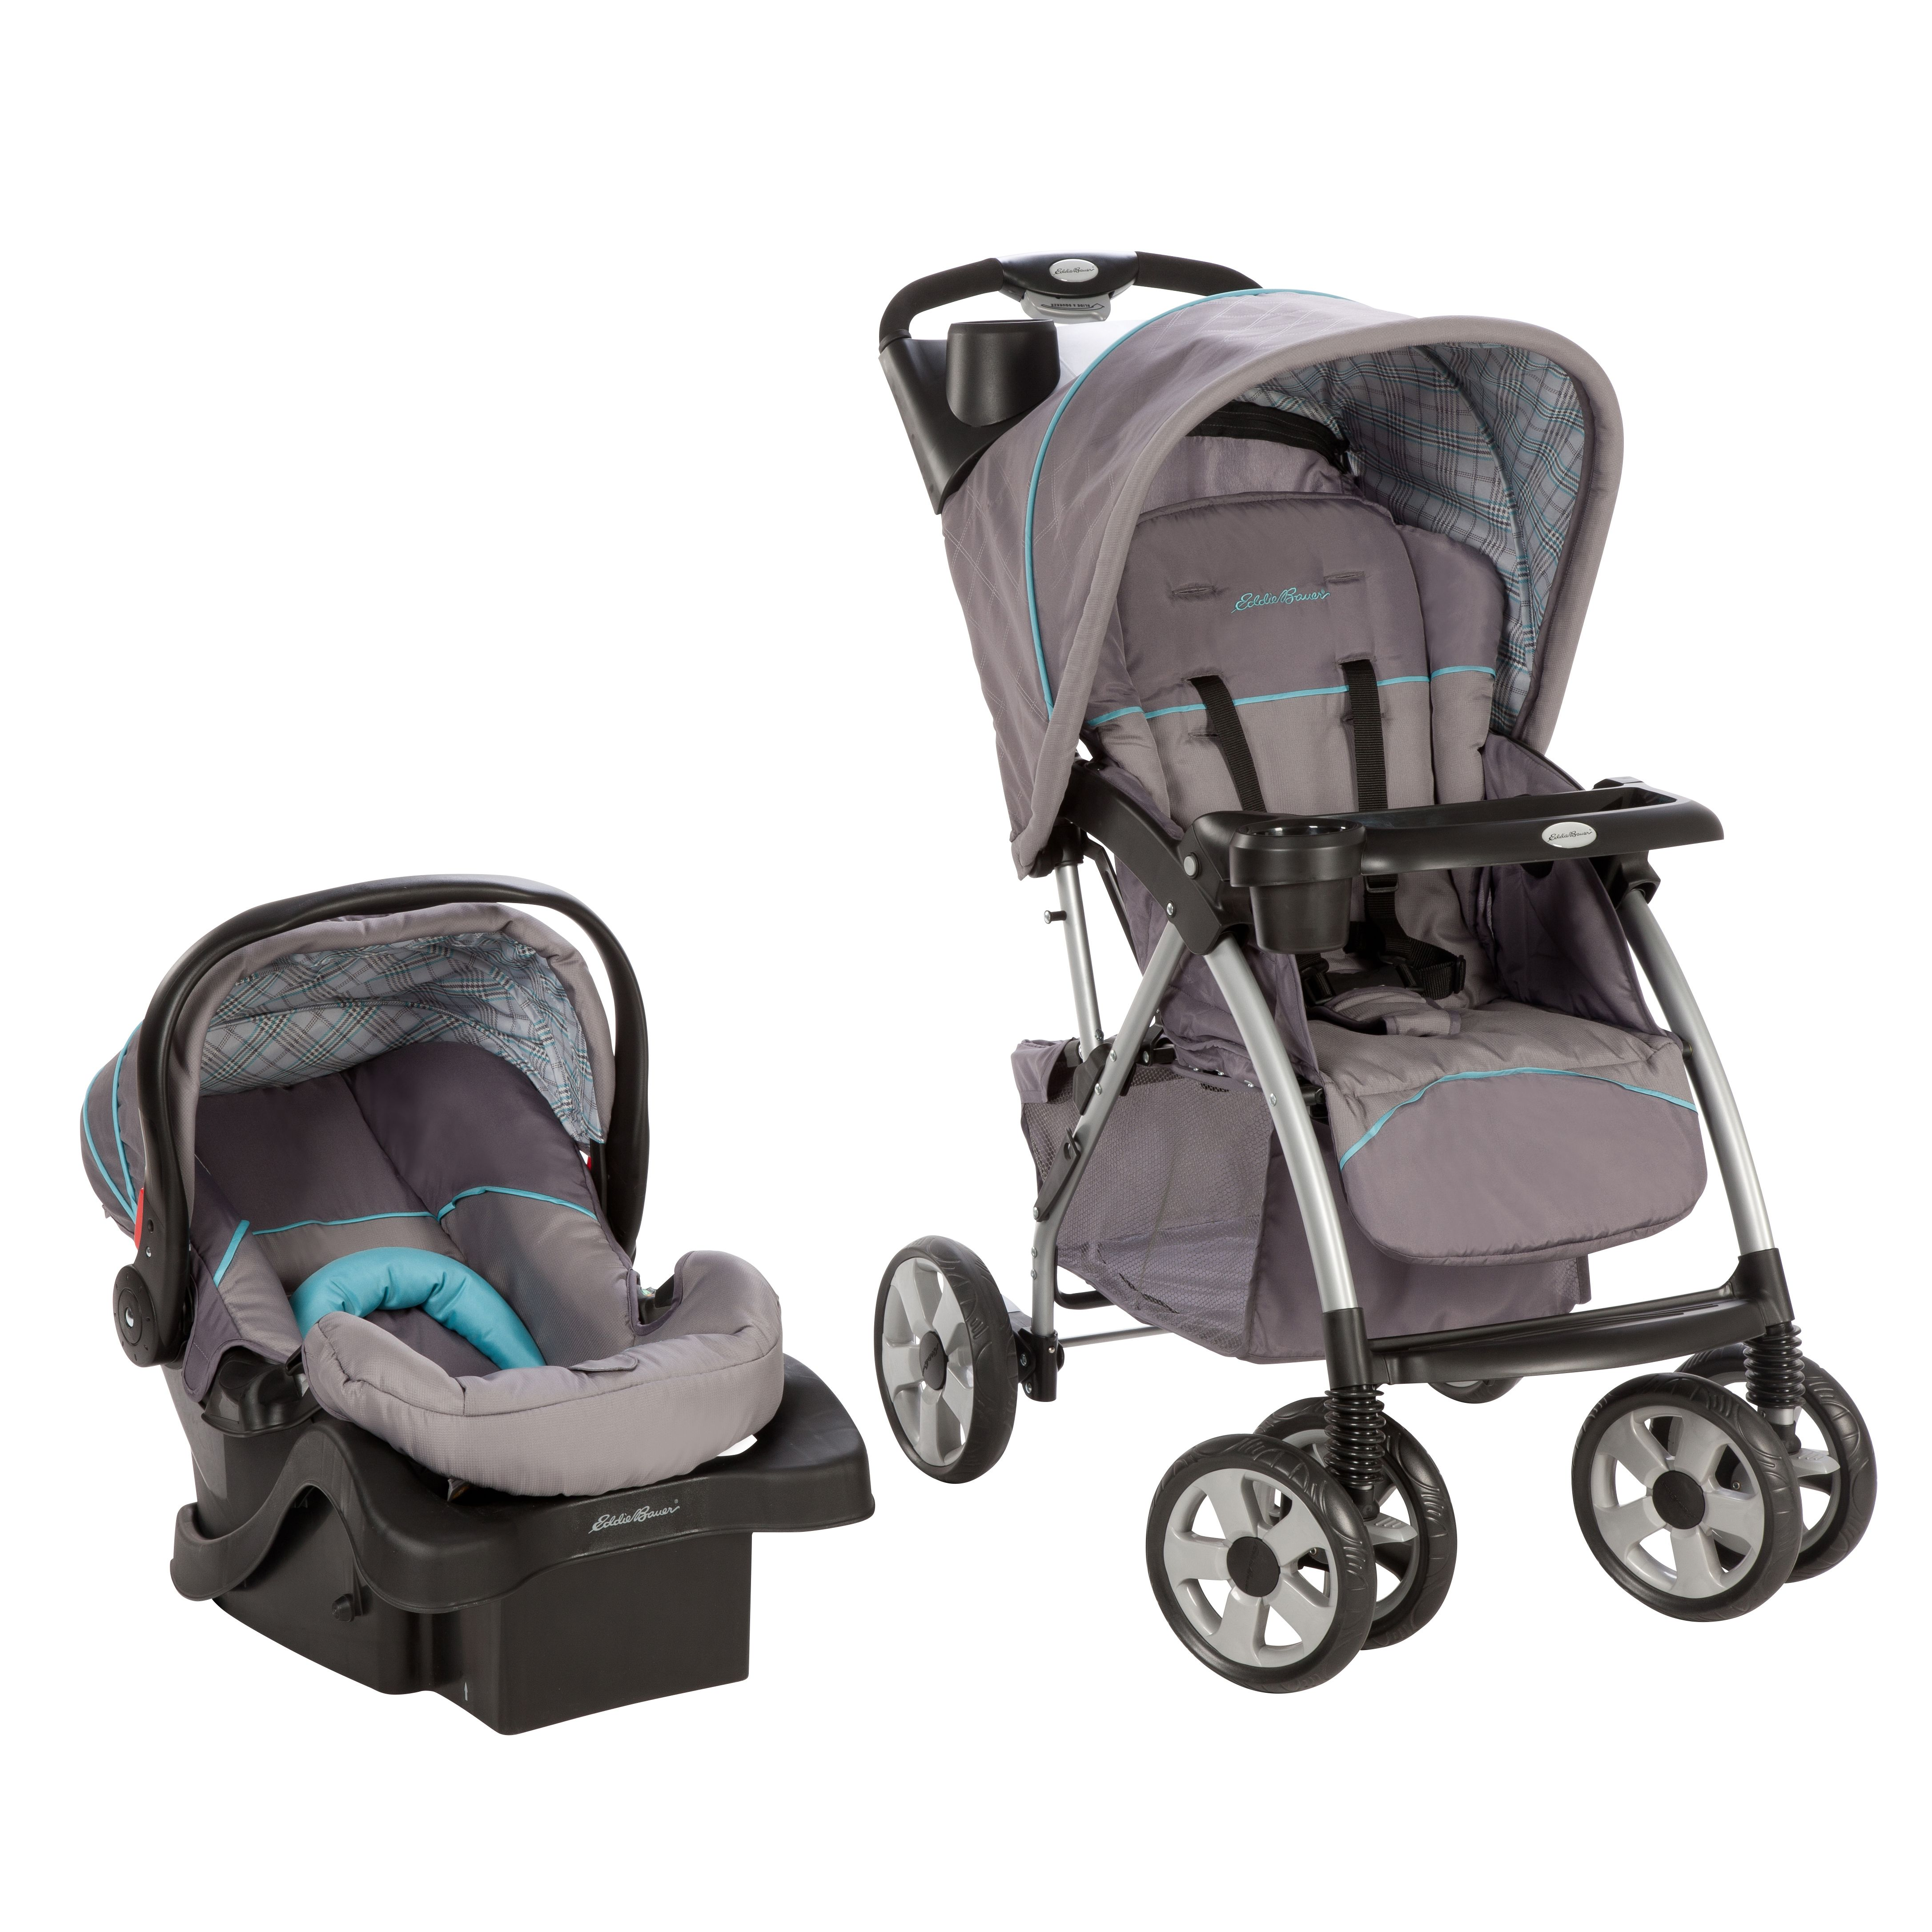 Stroller/Car Seat Travel System includes a stroller with ...